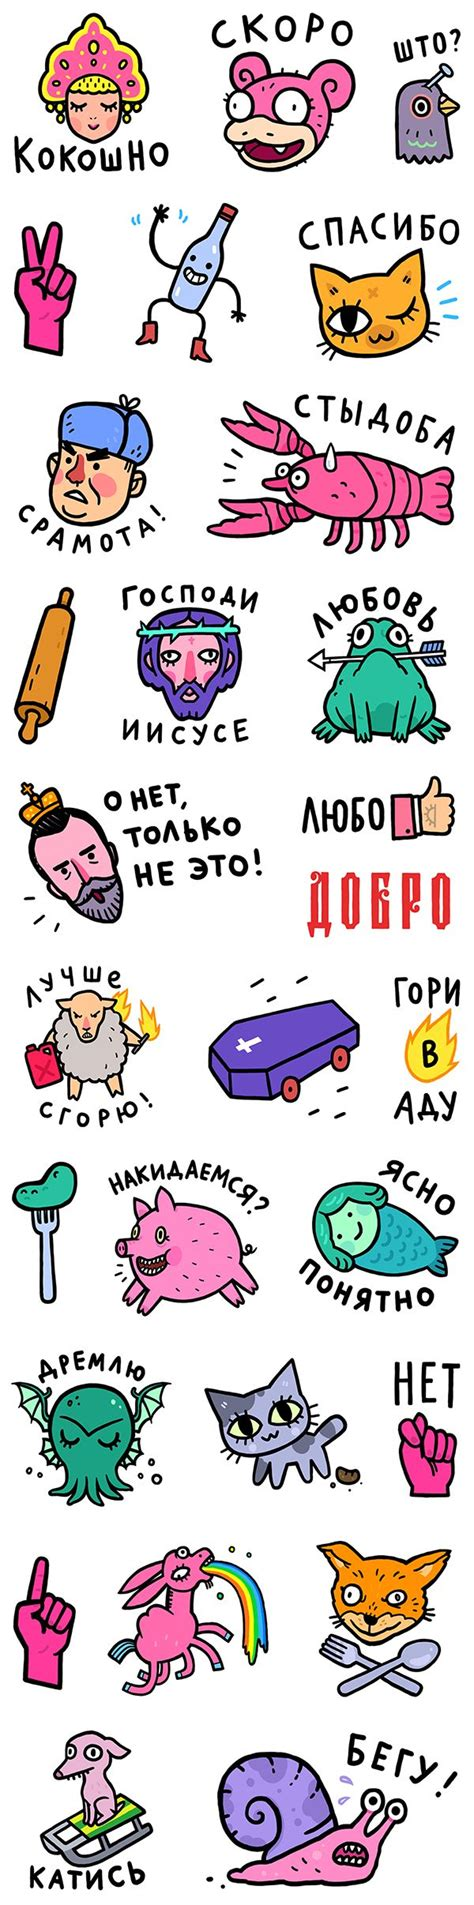 viber doodle drawings viber stickers illustration illustrations